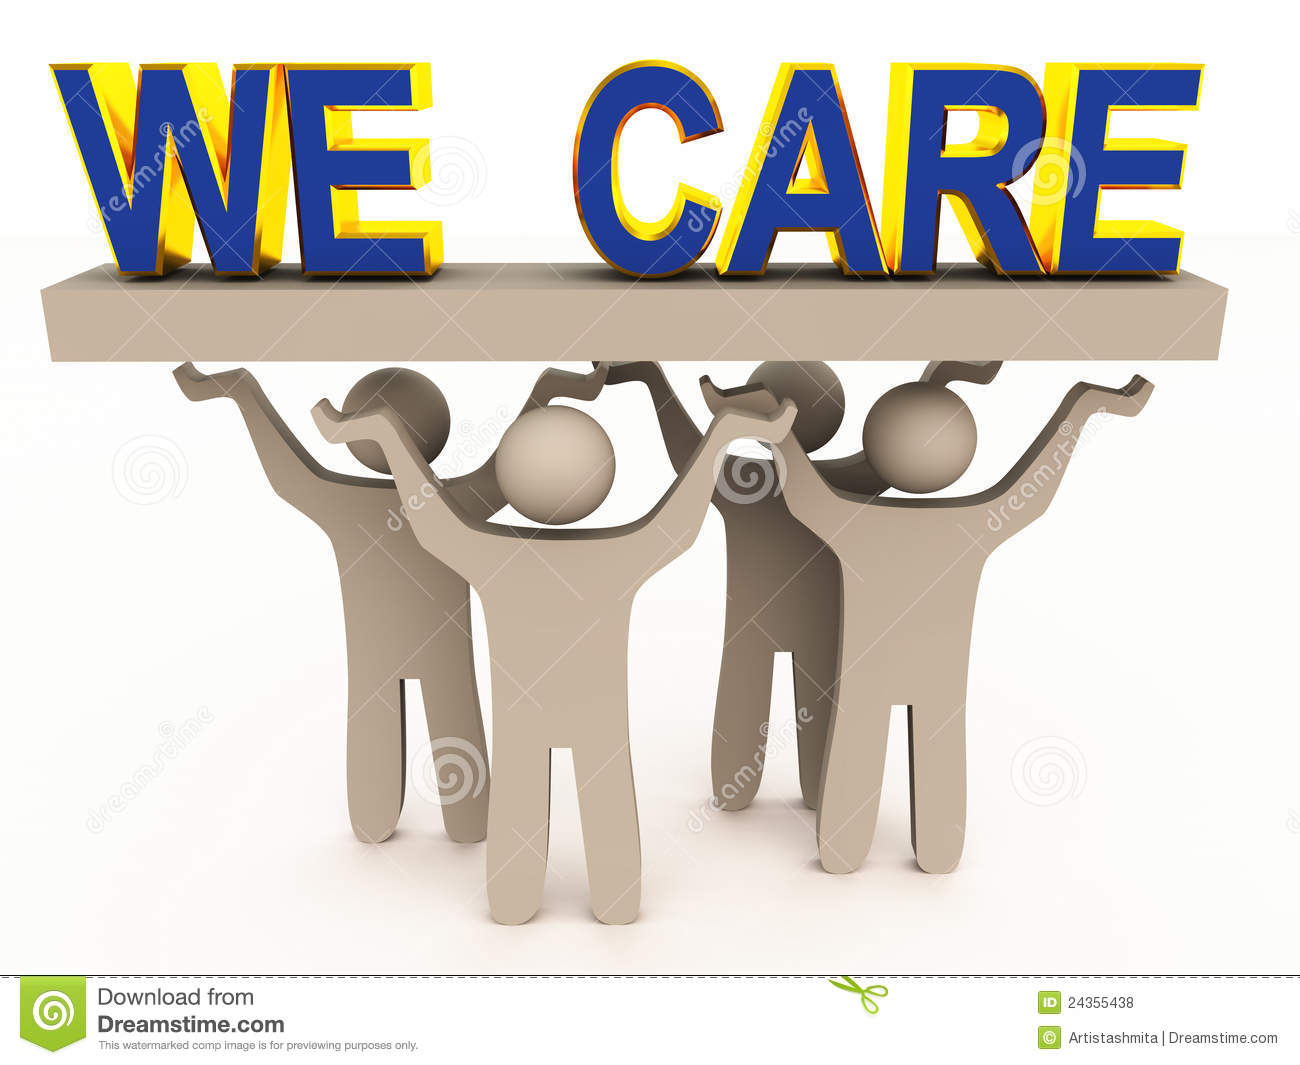 Customer care concept image with figures holding we care words on a ...